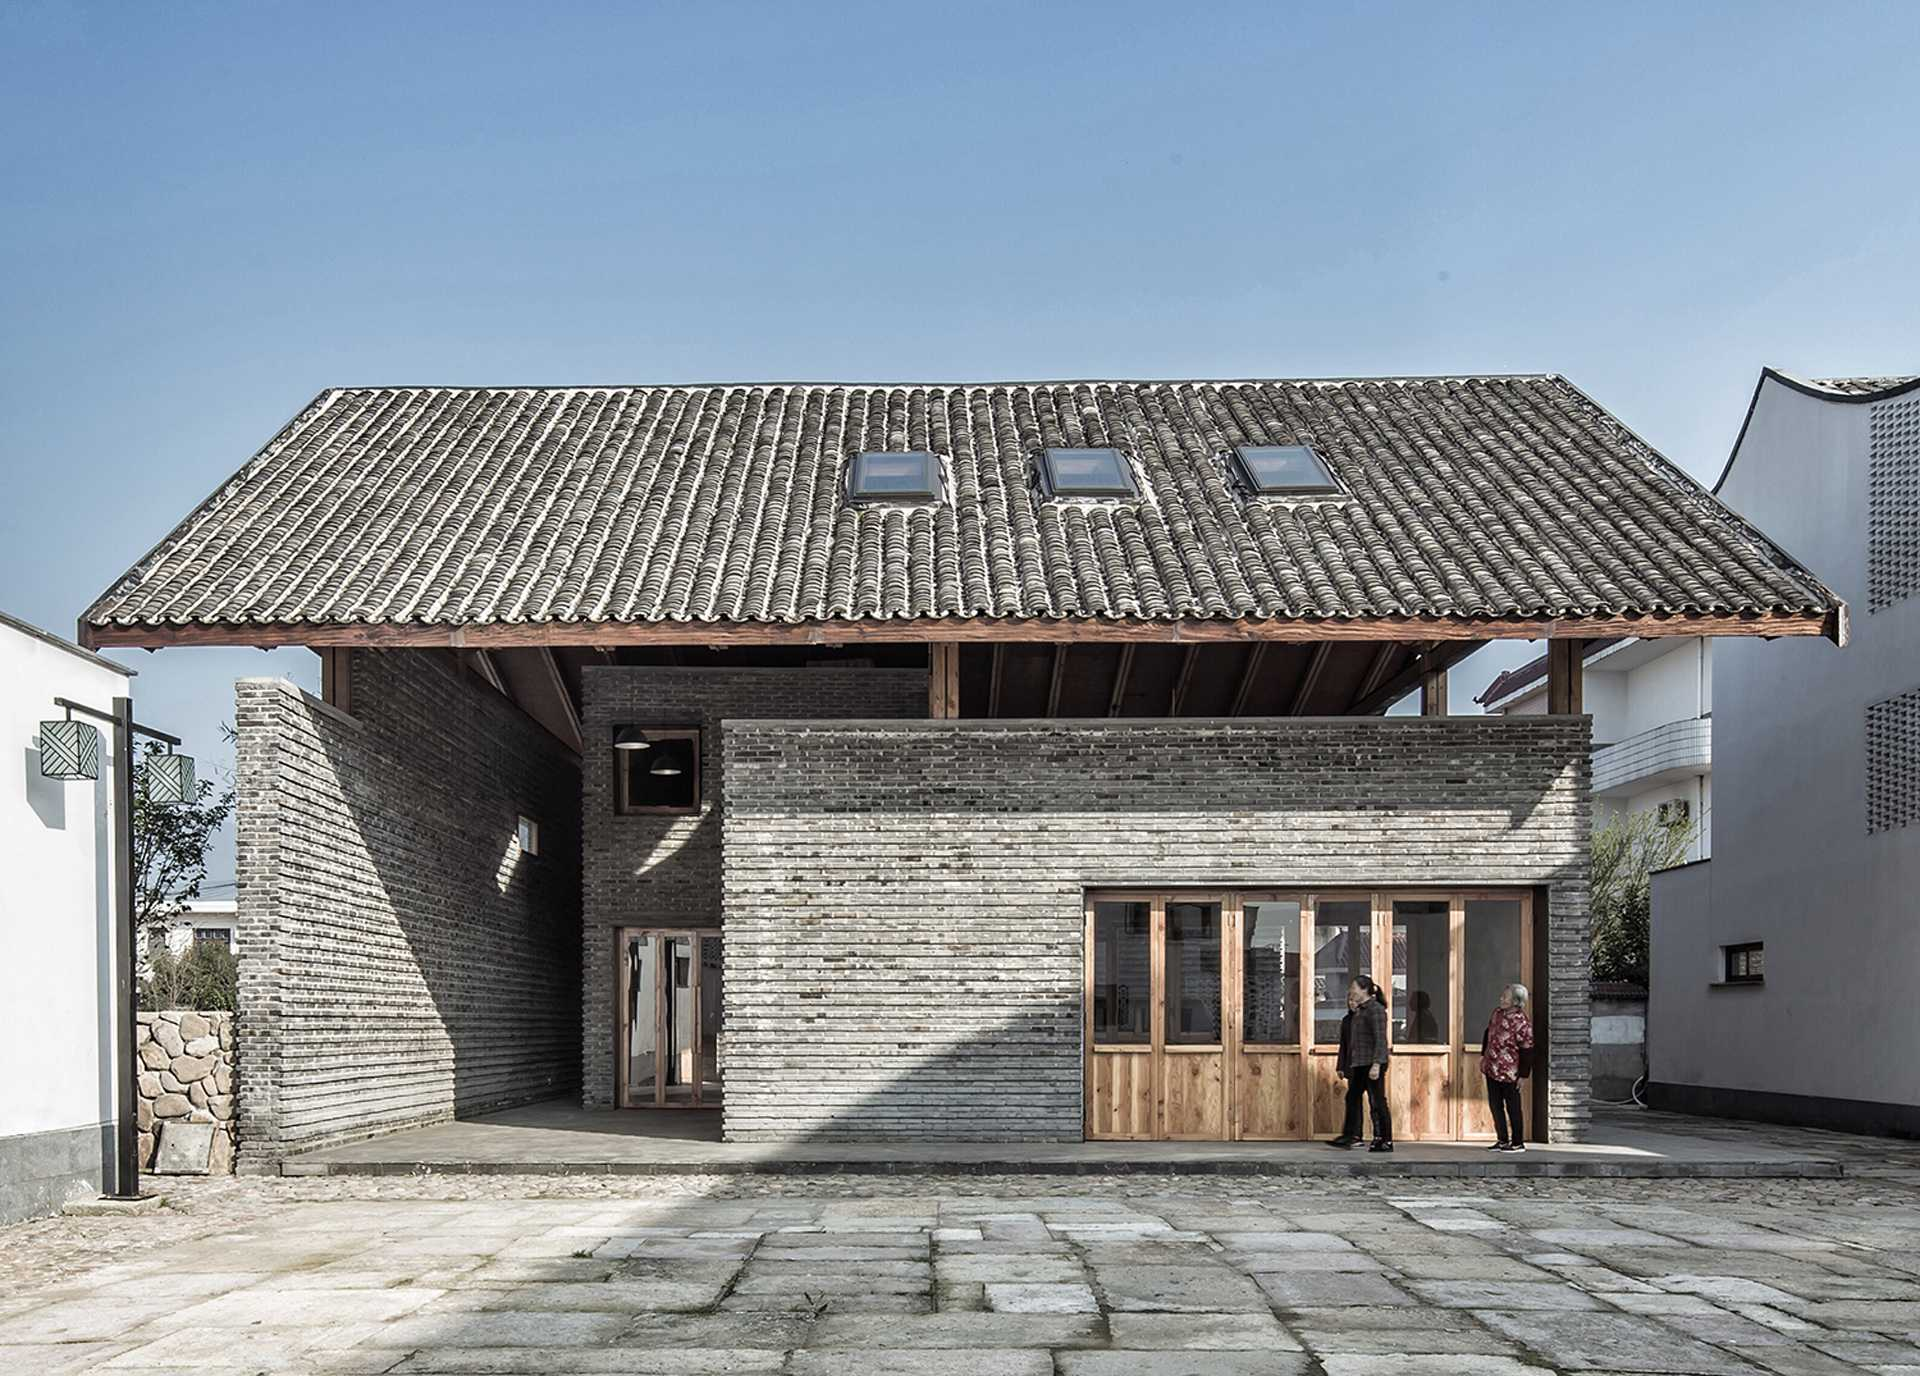 Dongziguan Villager´s Activity Centre  - 01 fuyang 31